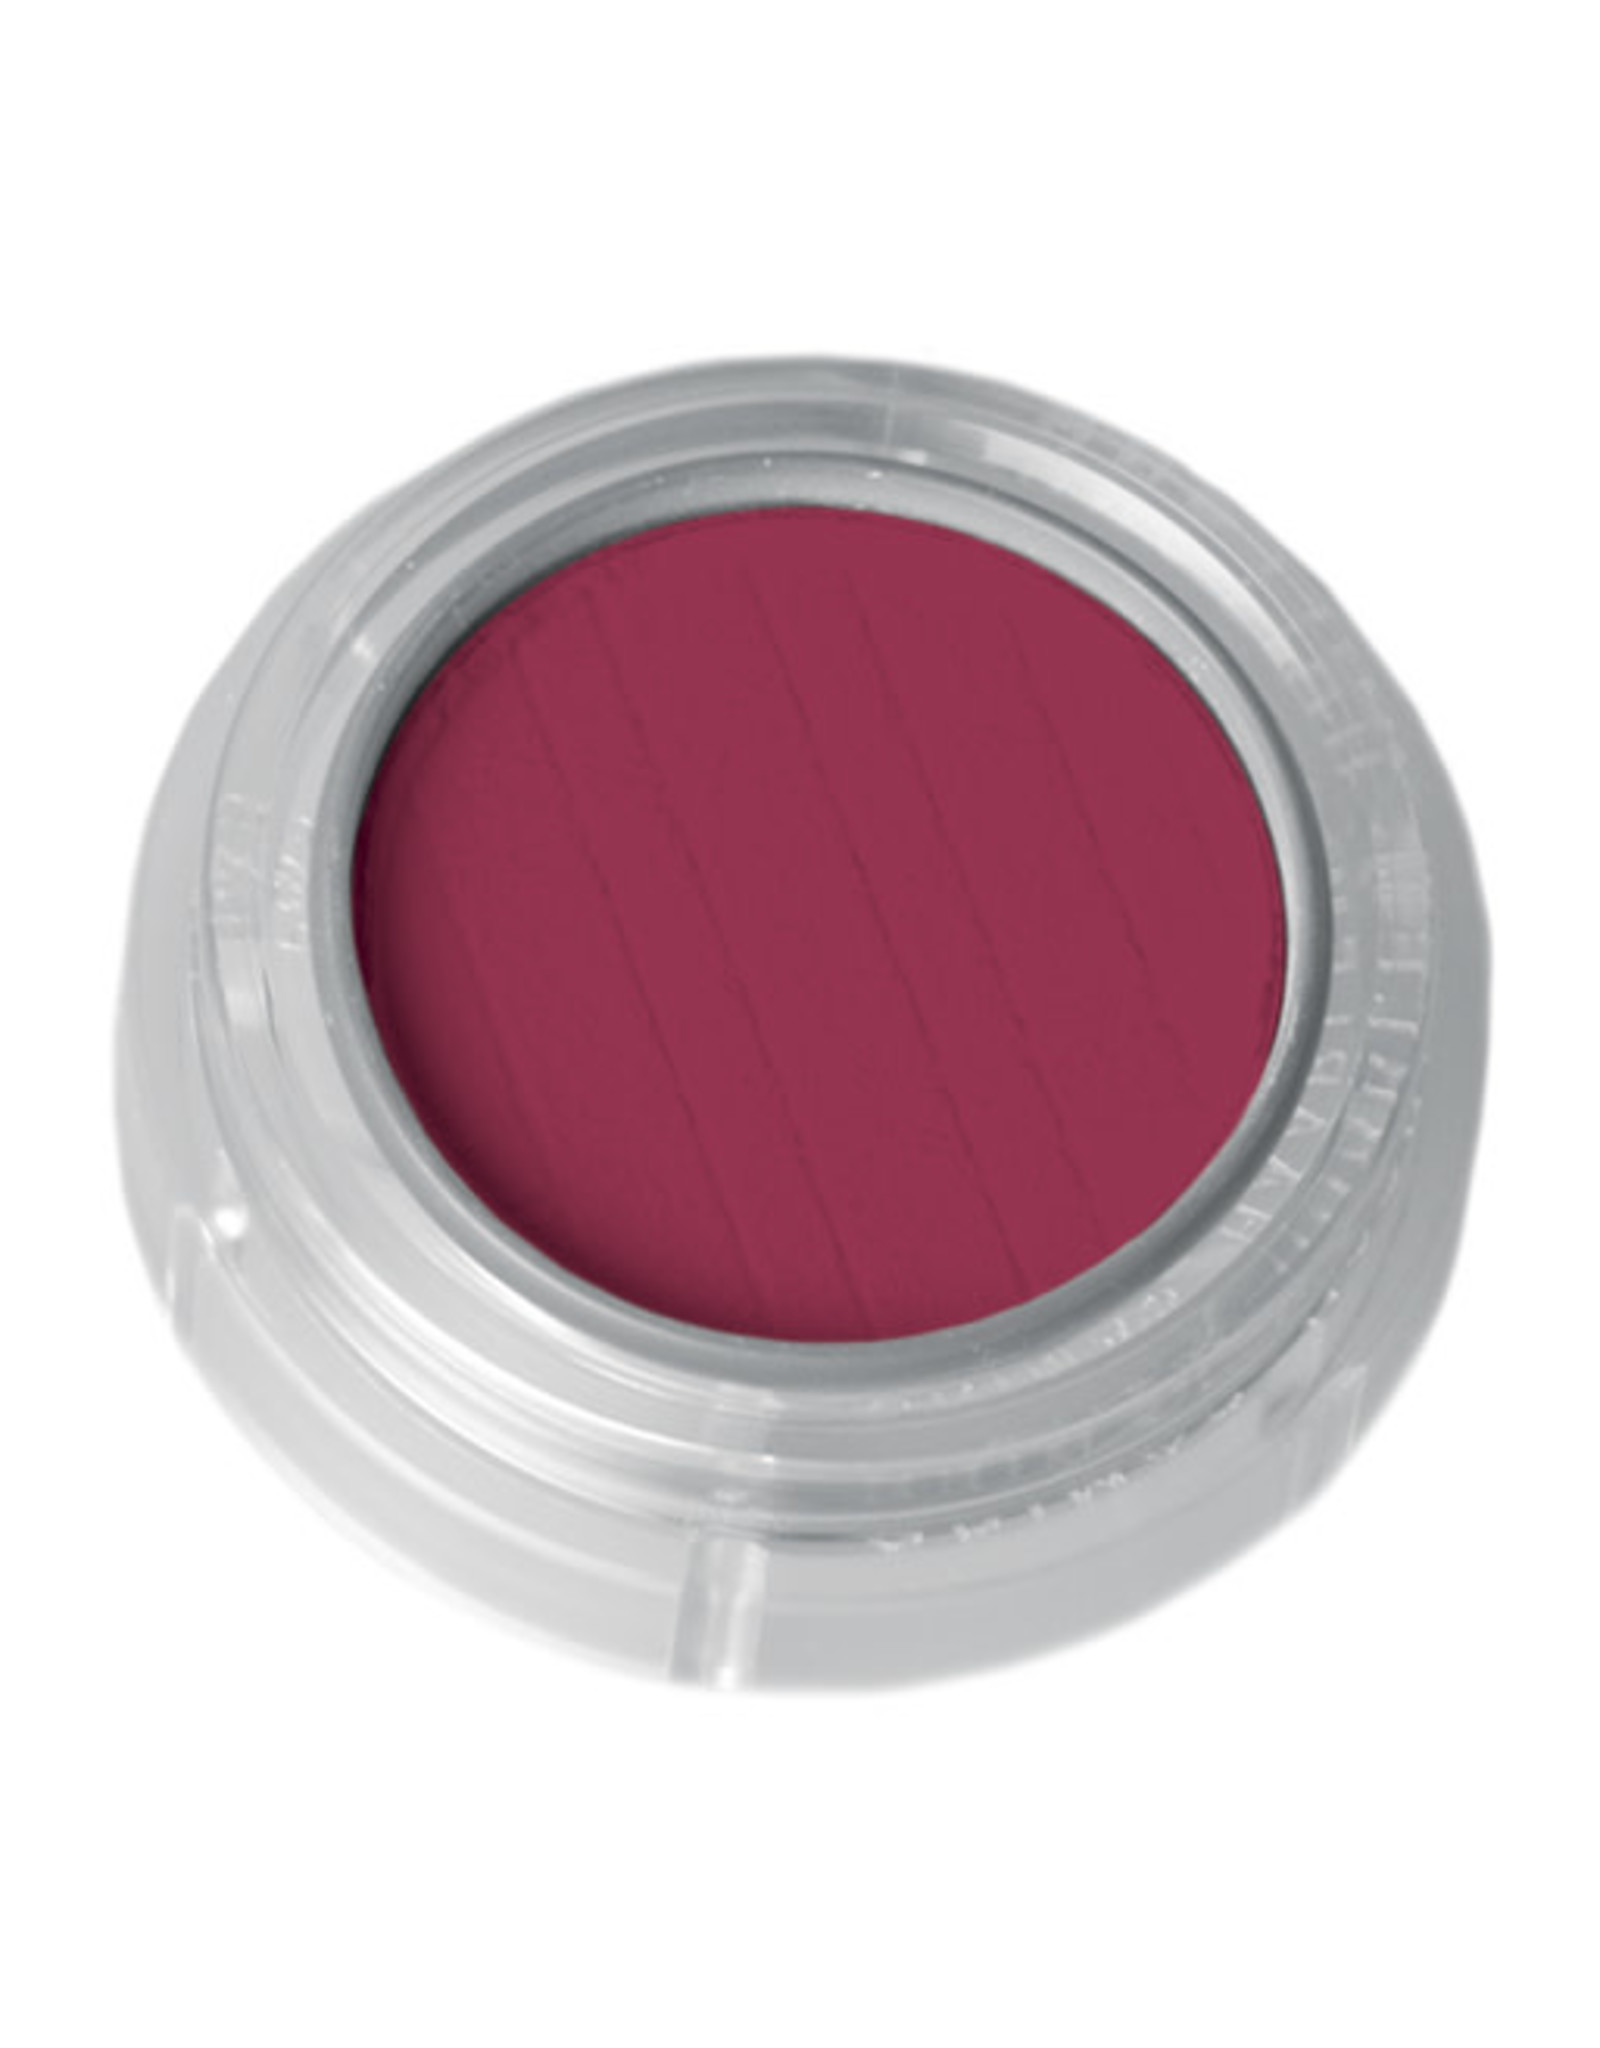 Grimas EYESHADOW/ROUGE  543 Donkerrood A1 (2 g)